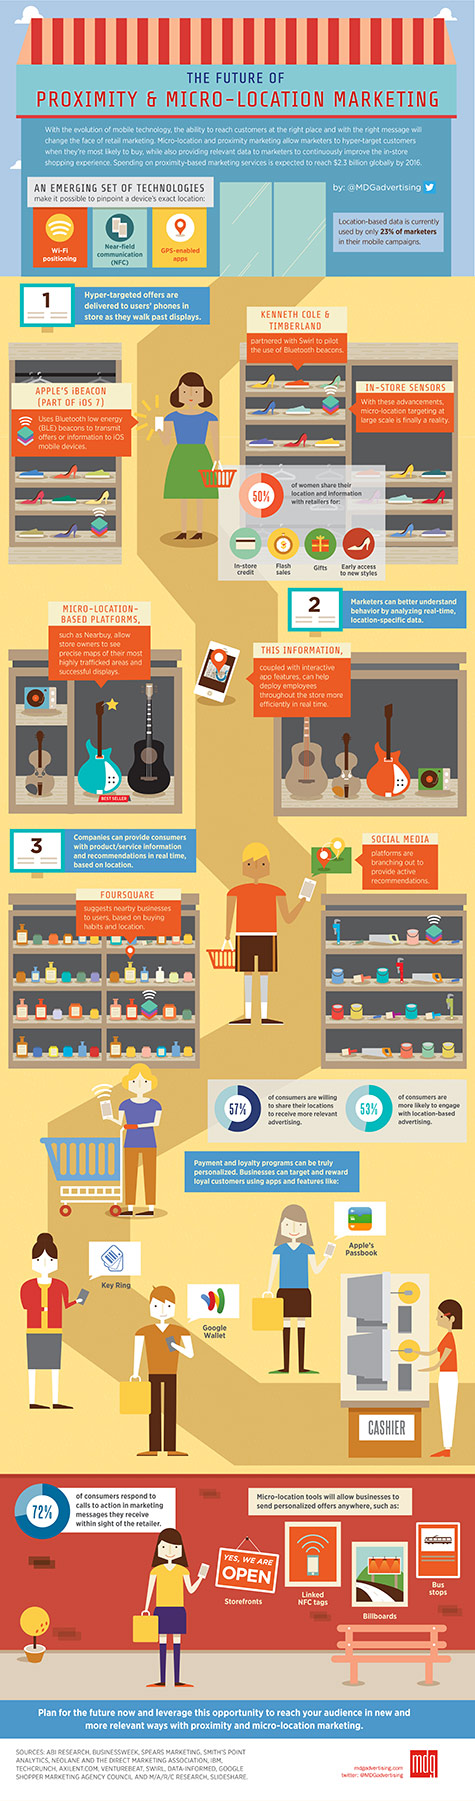 Micro-Location Marketing [Infographic]